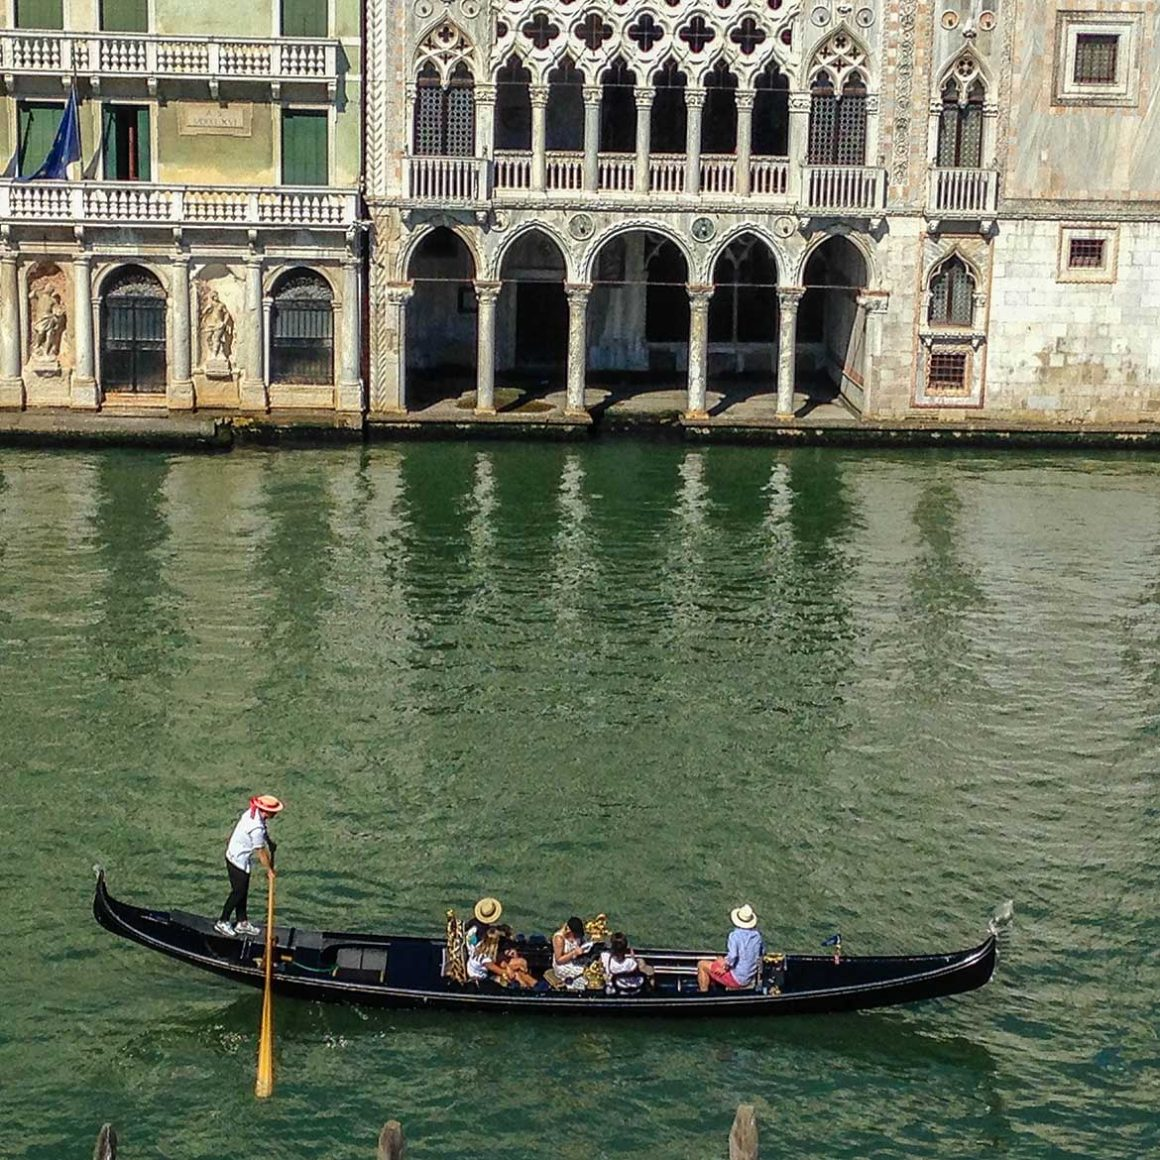 Gondola touring the main canal in venice